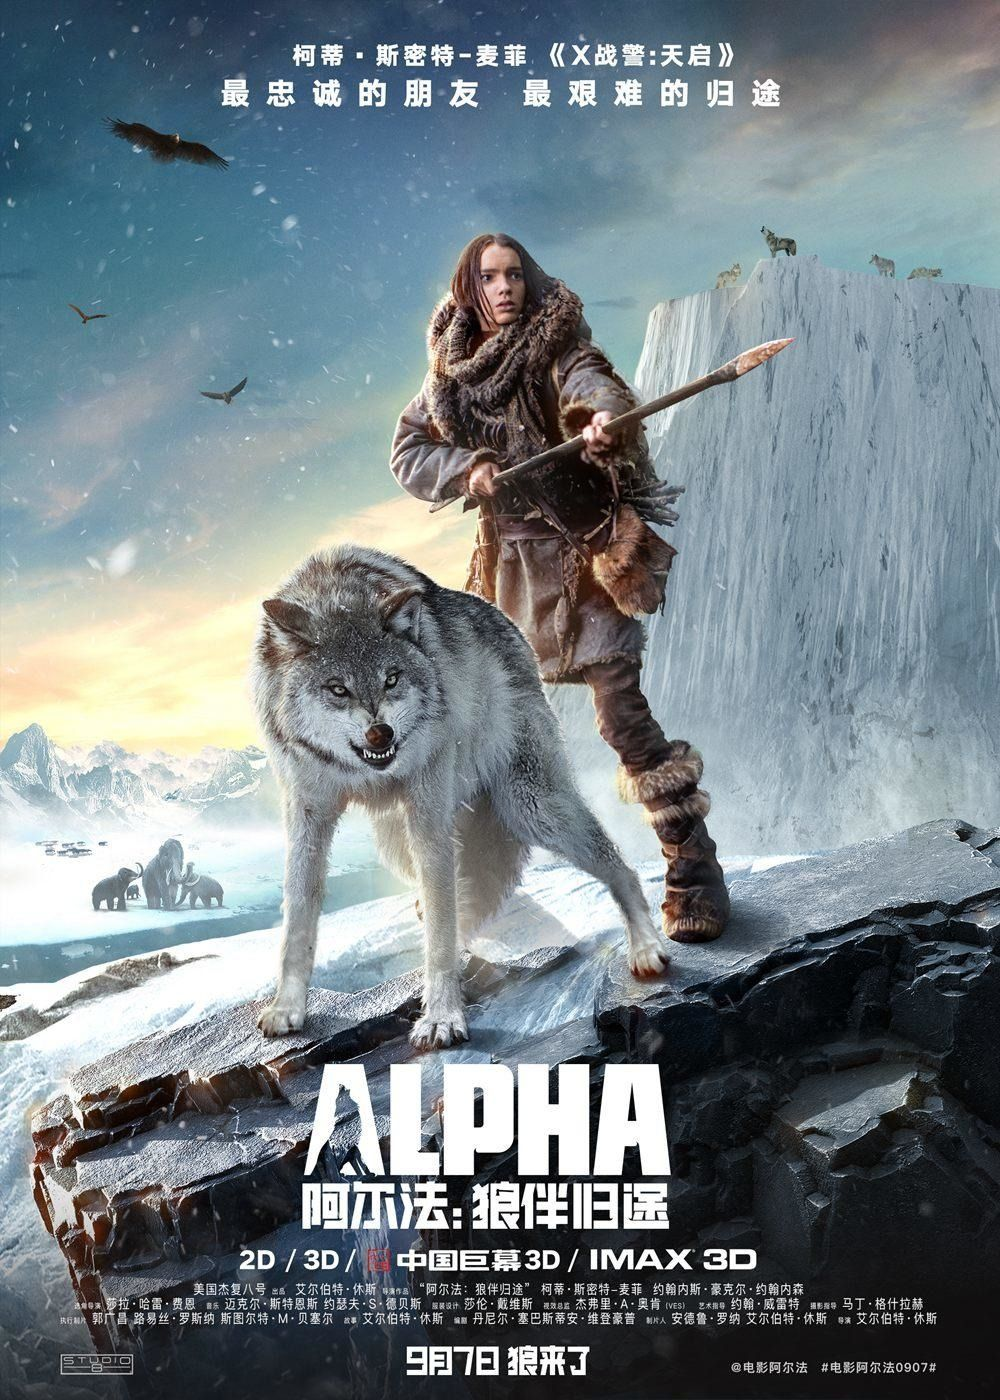 Alpha Download Or Stream Available Free Movies Online Full Movies Online Free Adventure Film